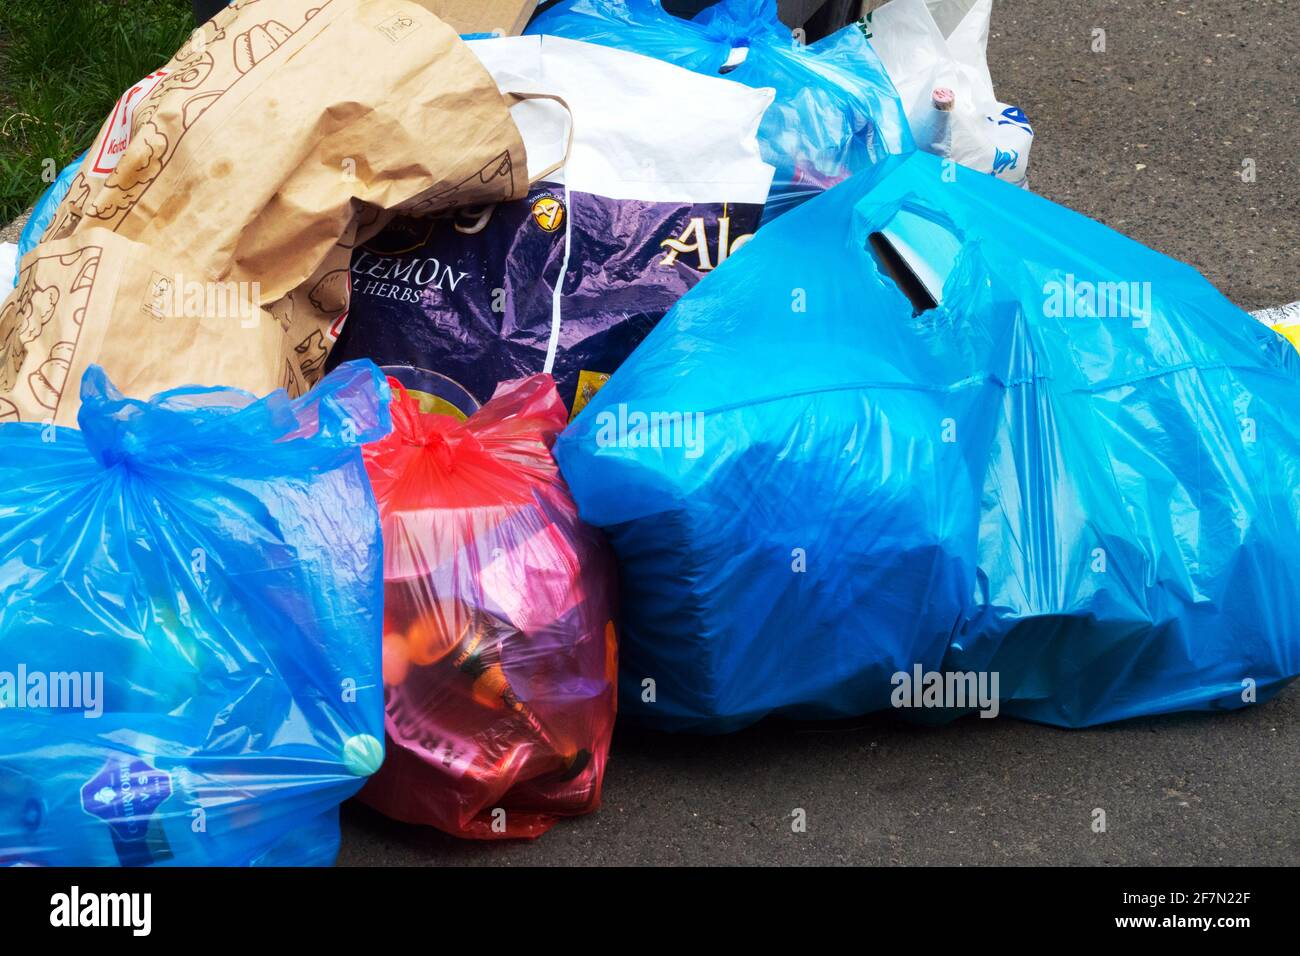 Discarded household waste in plastic bags, outside Stock Photo